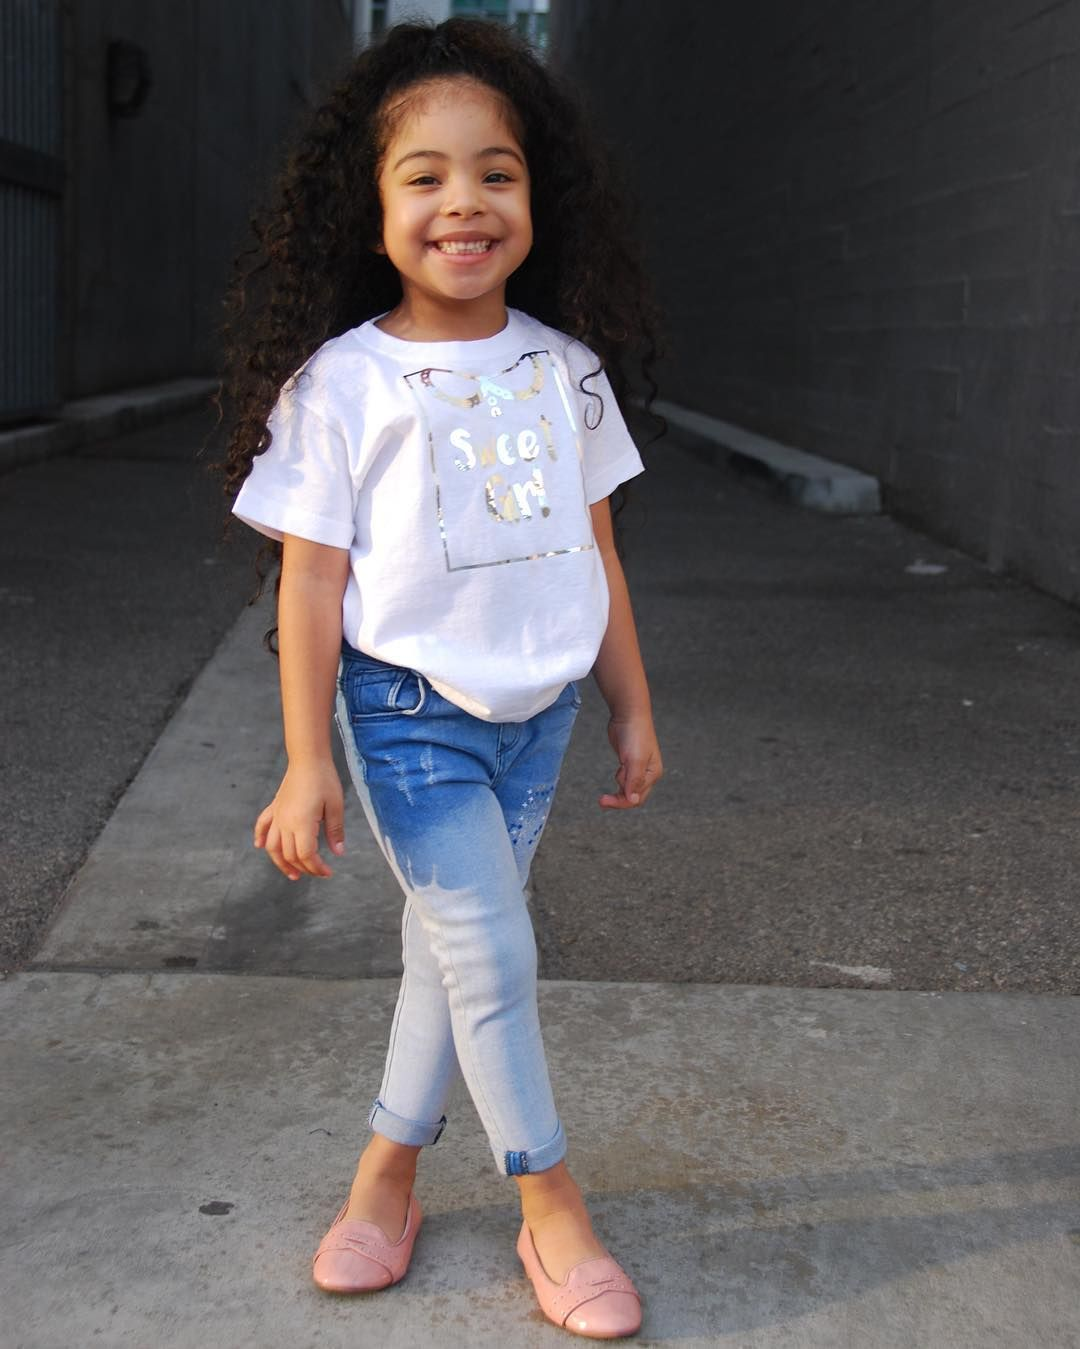 Pin by Bxtch on Beautiful kids | Cute outfits for kids ...